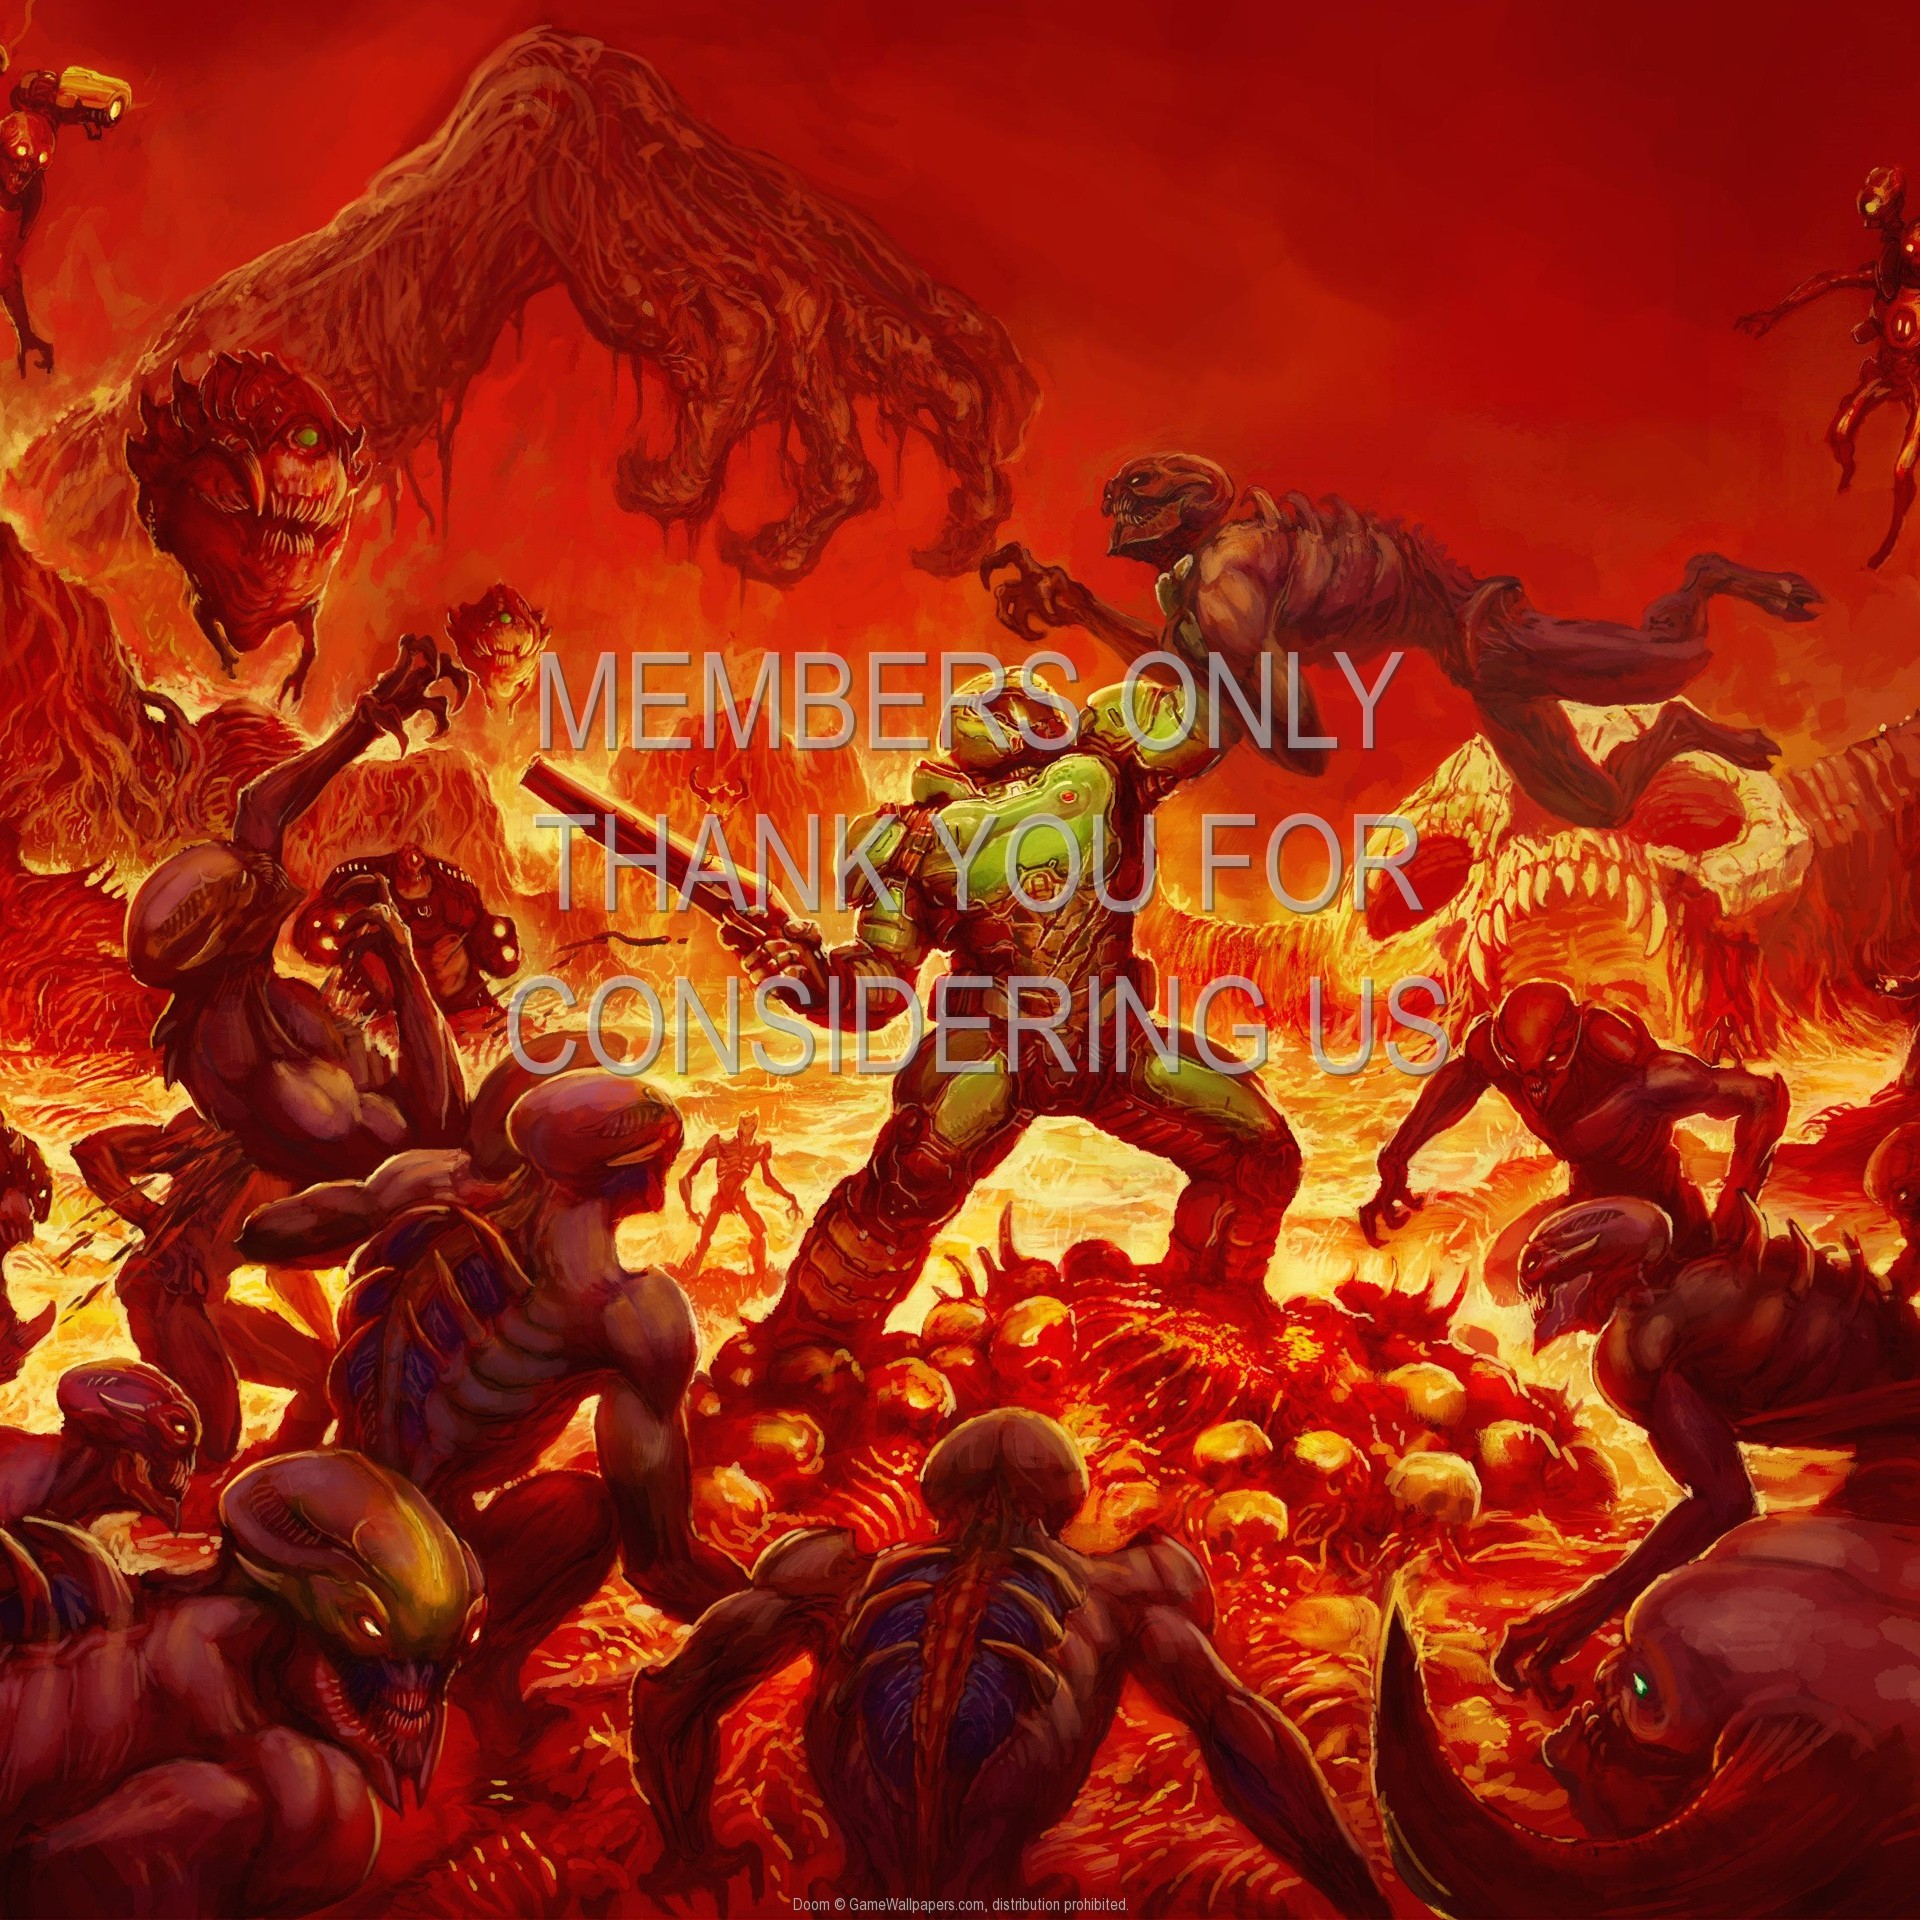 Doom wallpaper 1920x1080 ·① Download free full HD backgrounds for